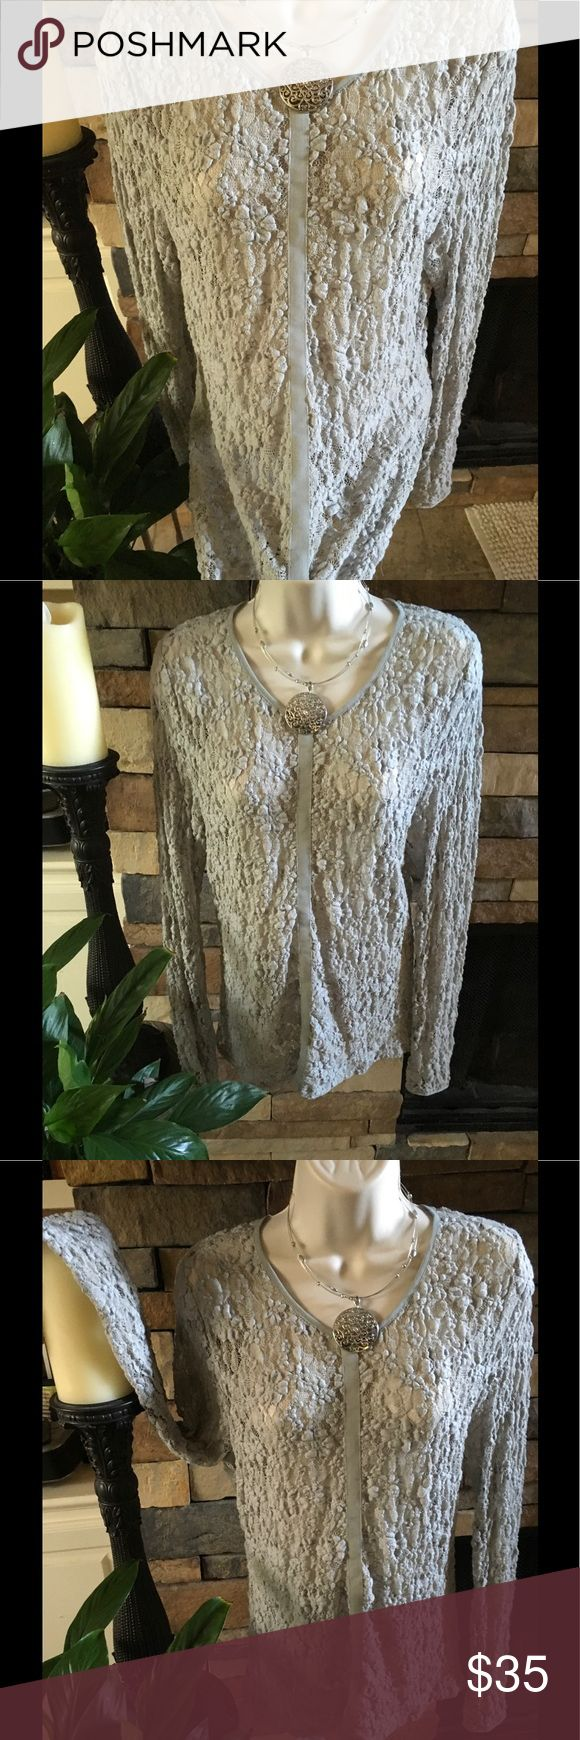 Guess - Guess Silver Stretch Lace Women's 🌿Med.🌿 Guess - Guess Silver Stretch Lace Women's 🍃Size Medium M Knit Top🍃 Guess Tops Tees - Long Sleeve